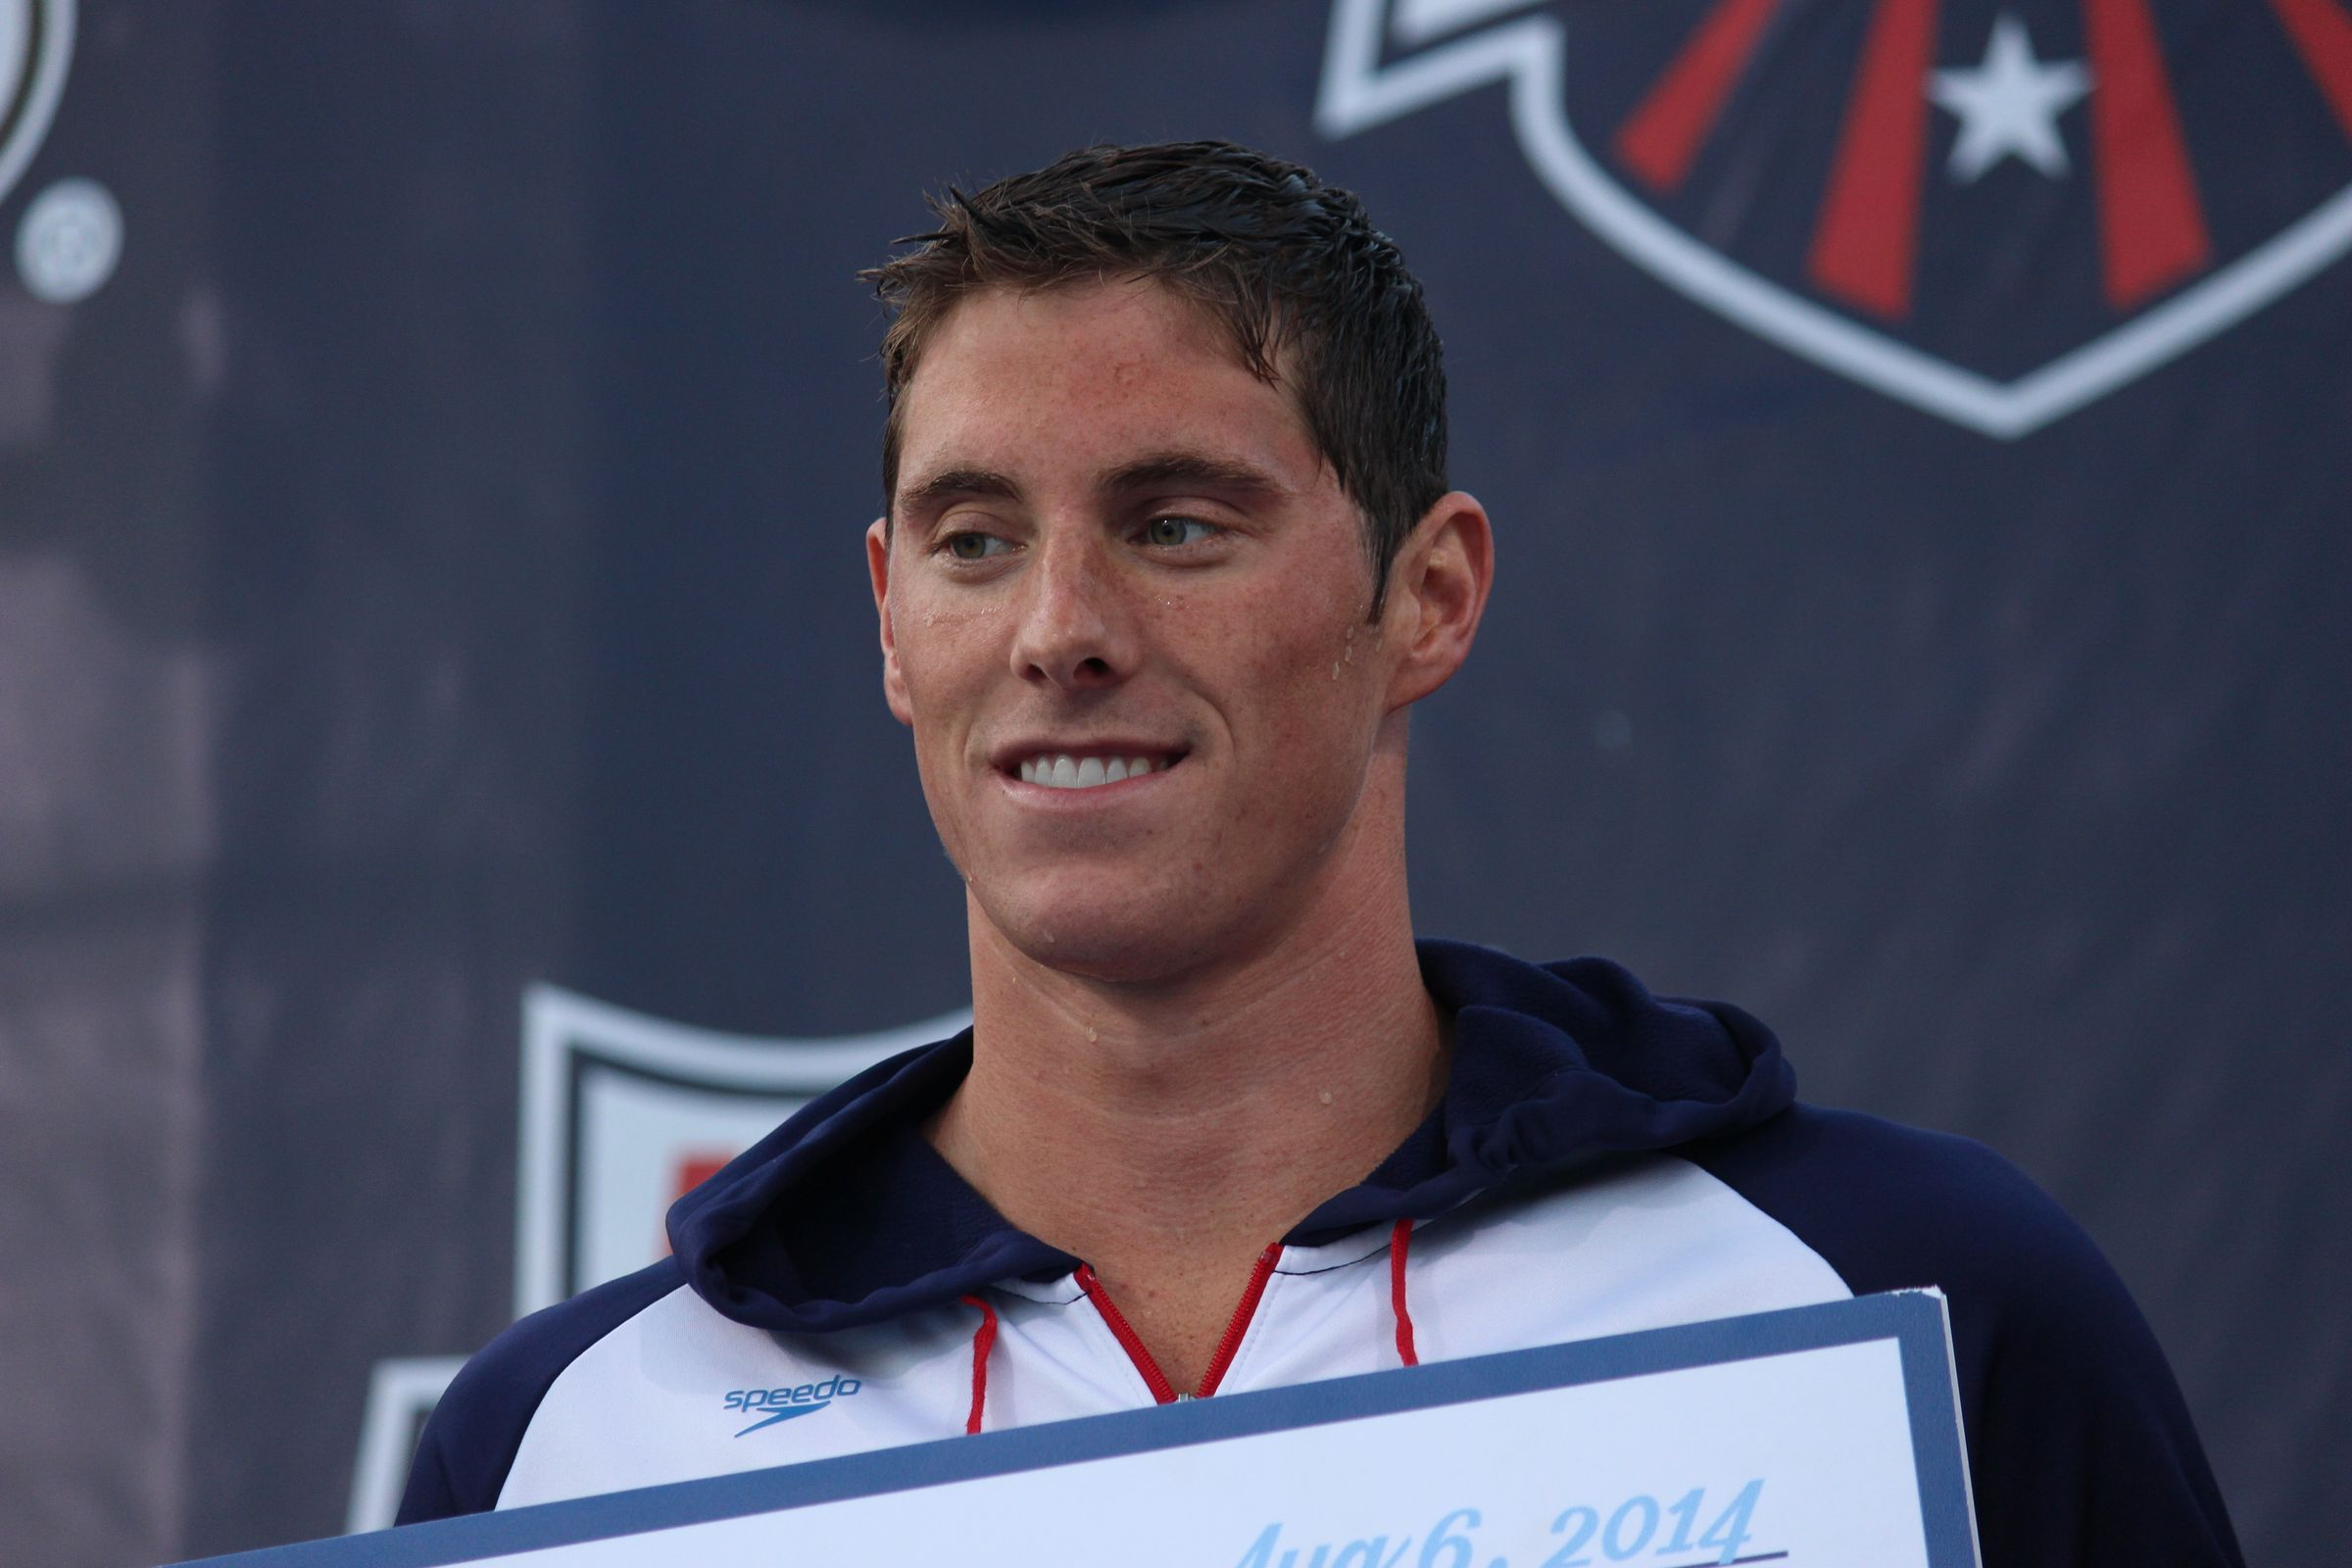 Conor Dwyer earned a  million dollar salary, leaving the net worth at 0.4 million in 2017